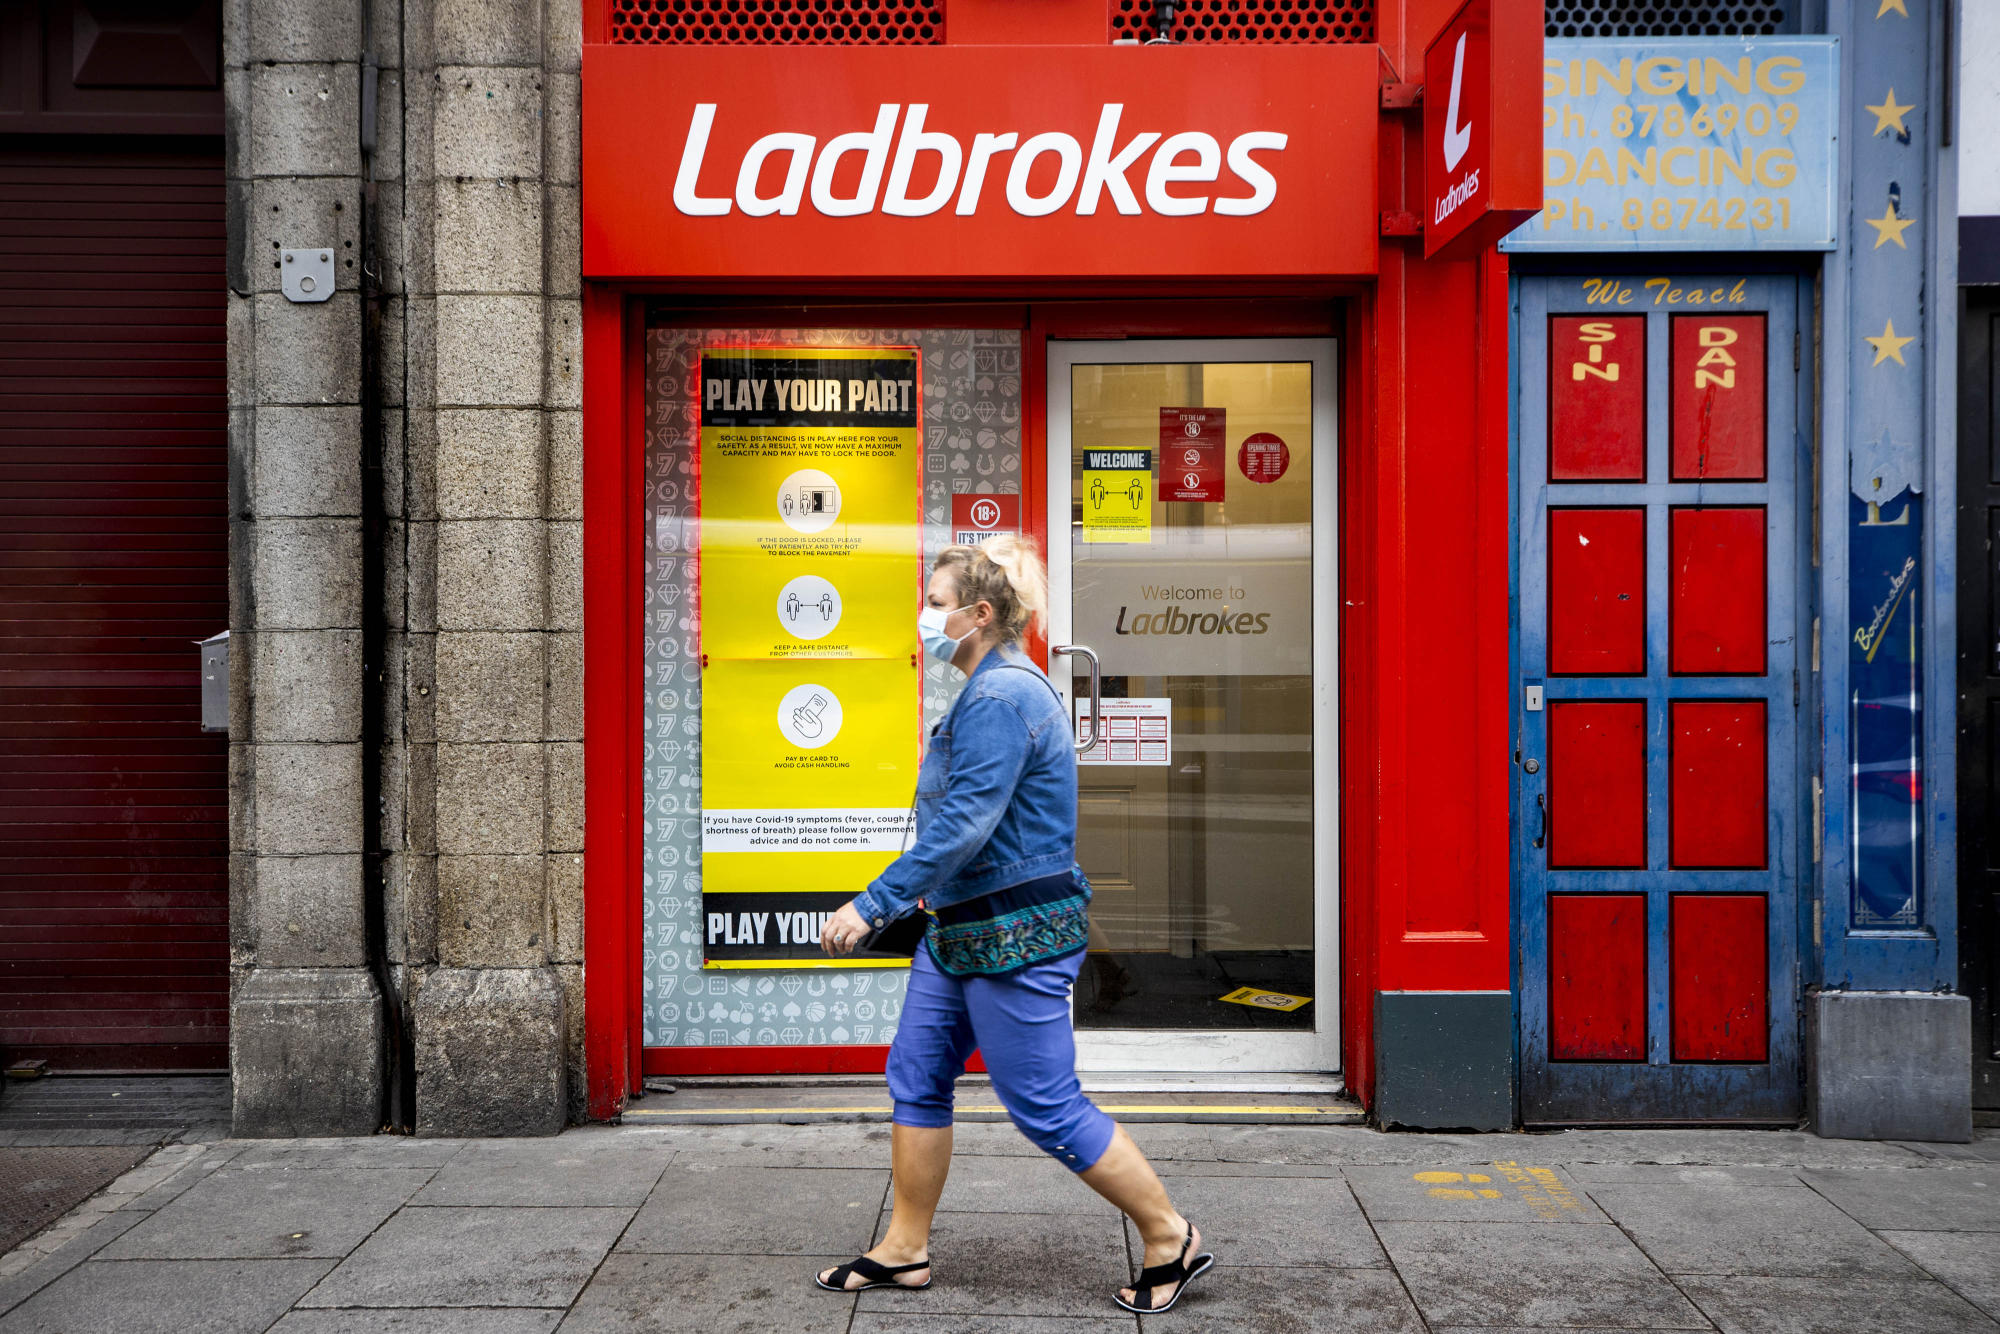 Online betting ladbrokes plc get started with bitcoins